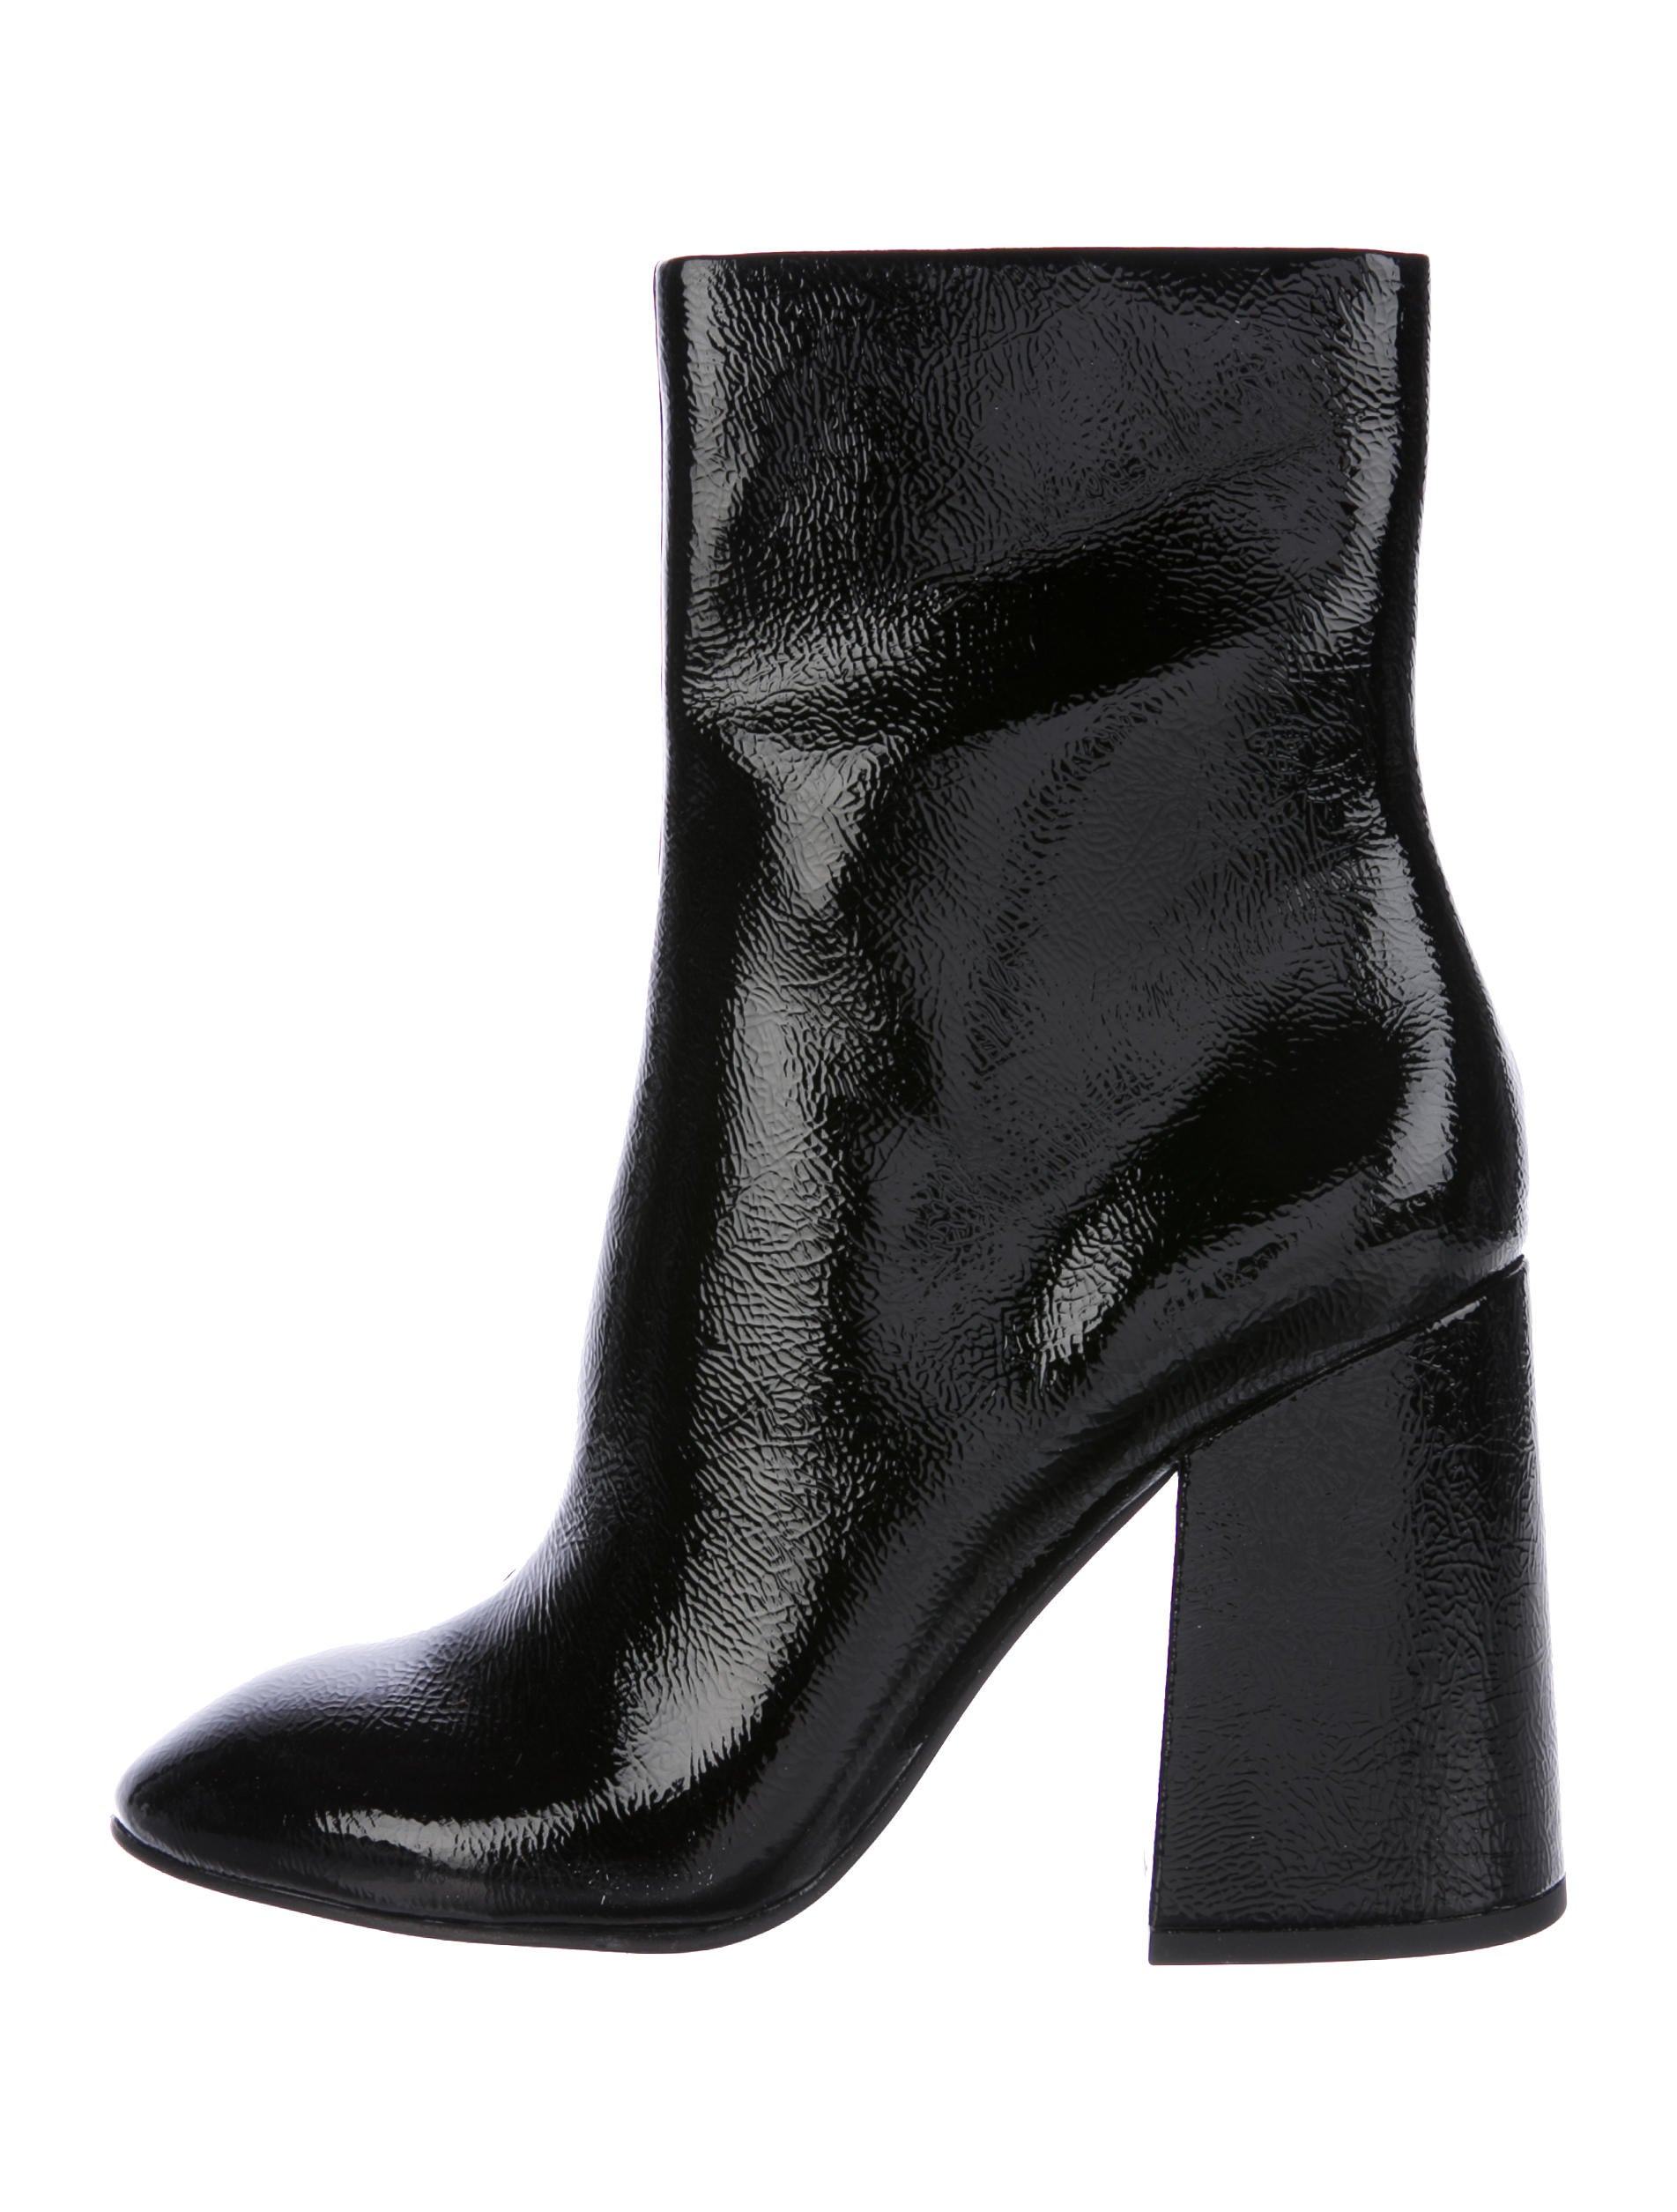 ash feel patent leather ankle boots shoes wab20273